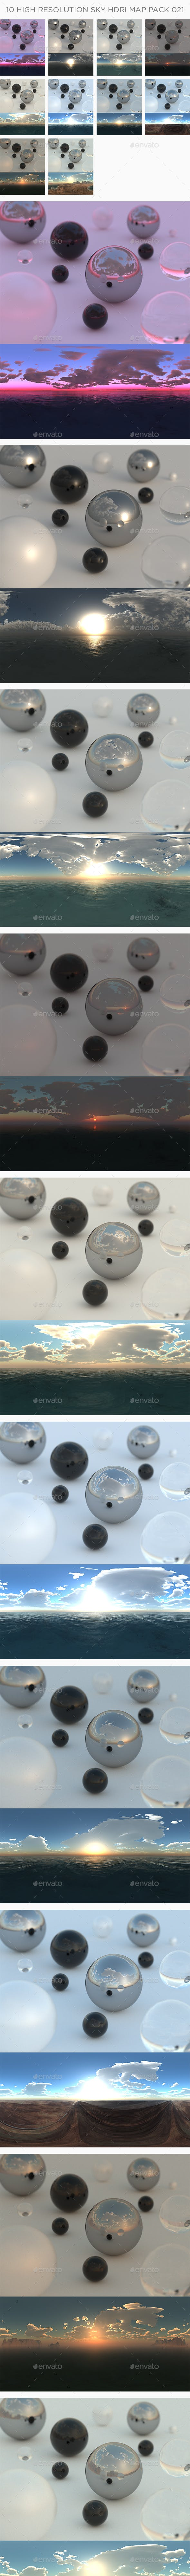 10 High Resolution Sky HDRi Maps Pack 021 - 3DOcean Item for Sale